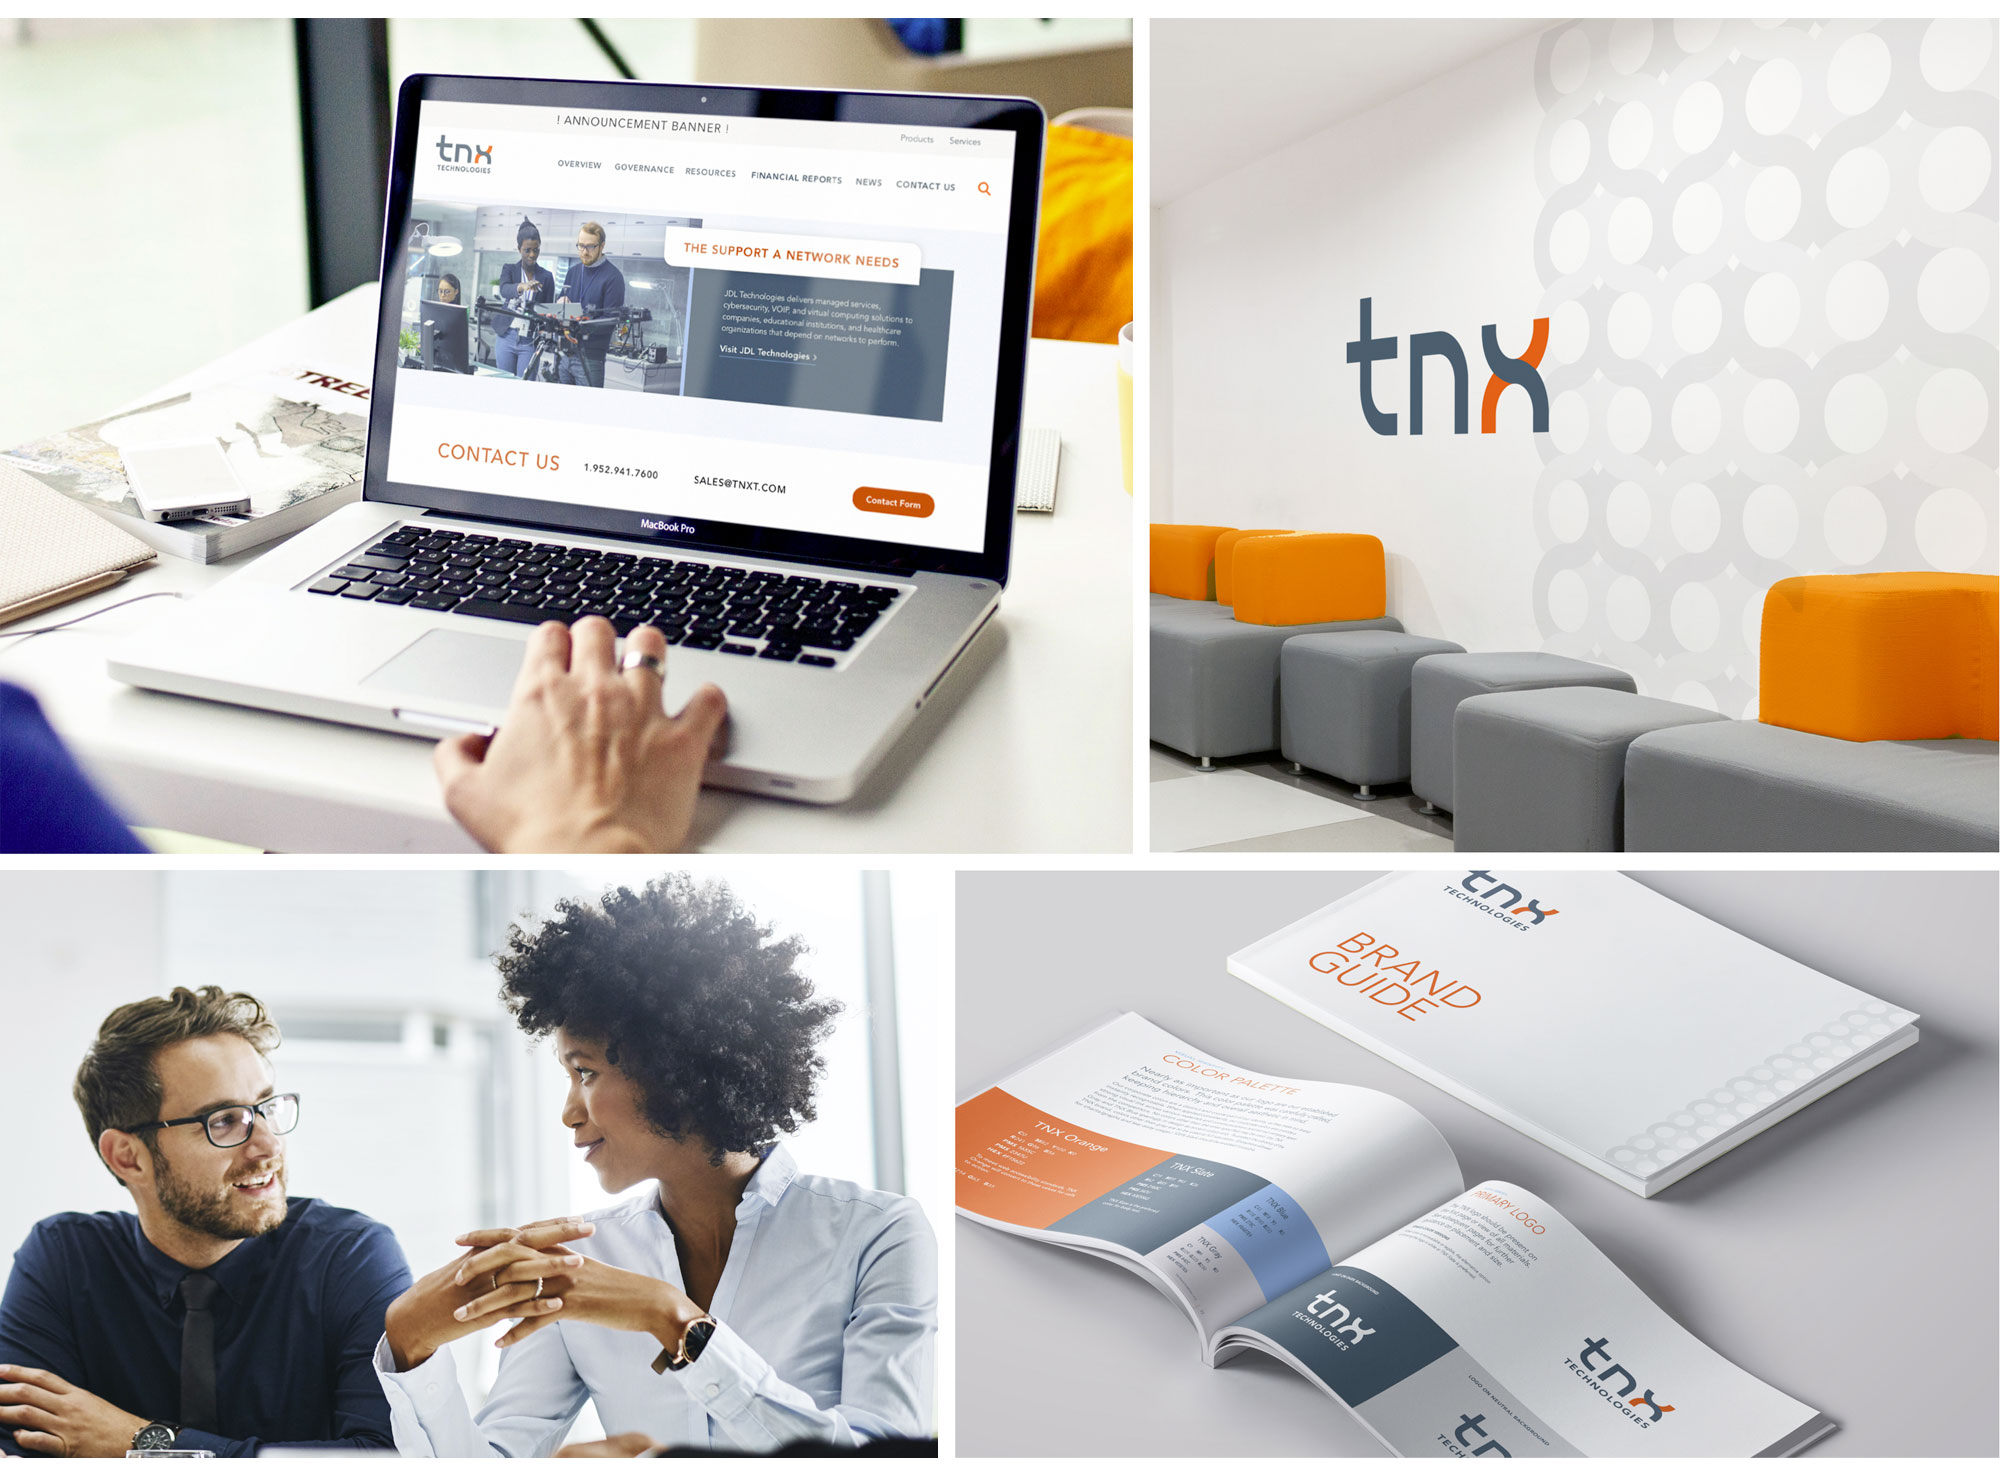 Examples of the TNX Technologies brand in use.